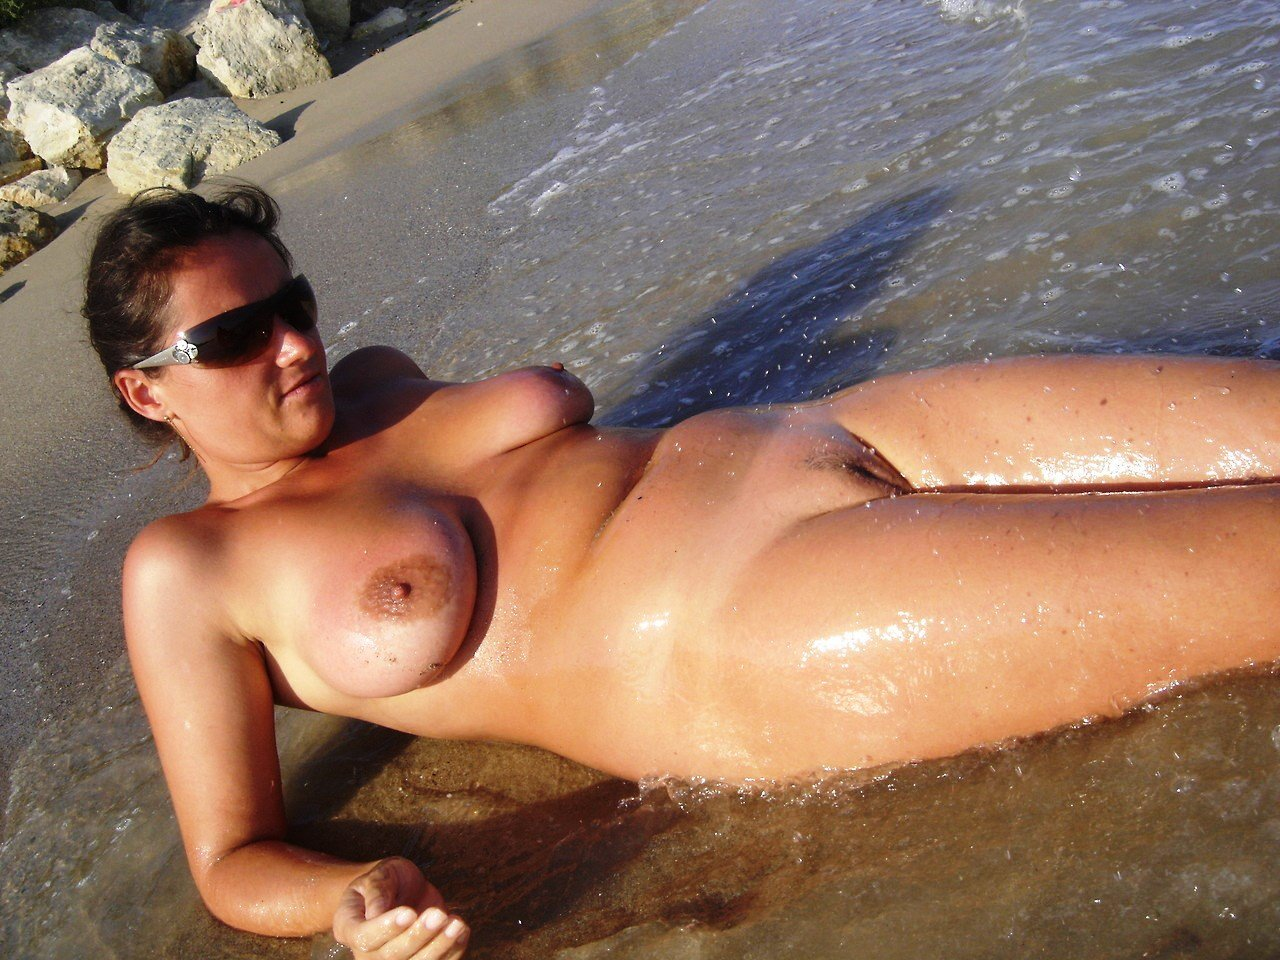 Sweaty wet pussy nudist milfs tanning beach voyeur hd picture